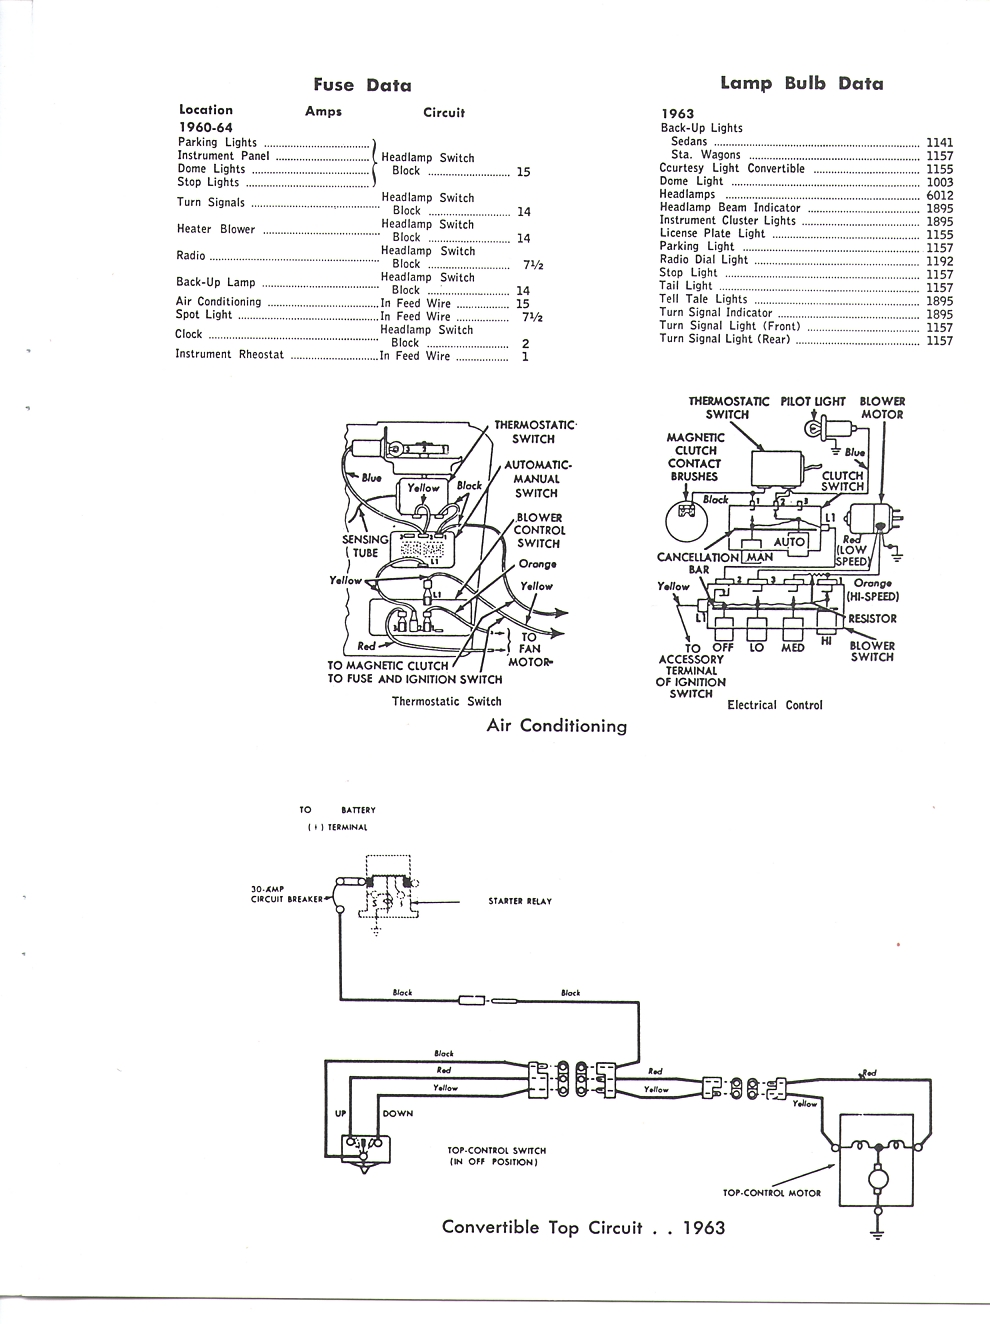 Falcon Wiring Diagram 1964 Ford Falcon Wiring Diagram Wiring Diagram